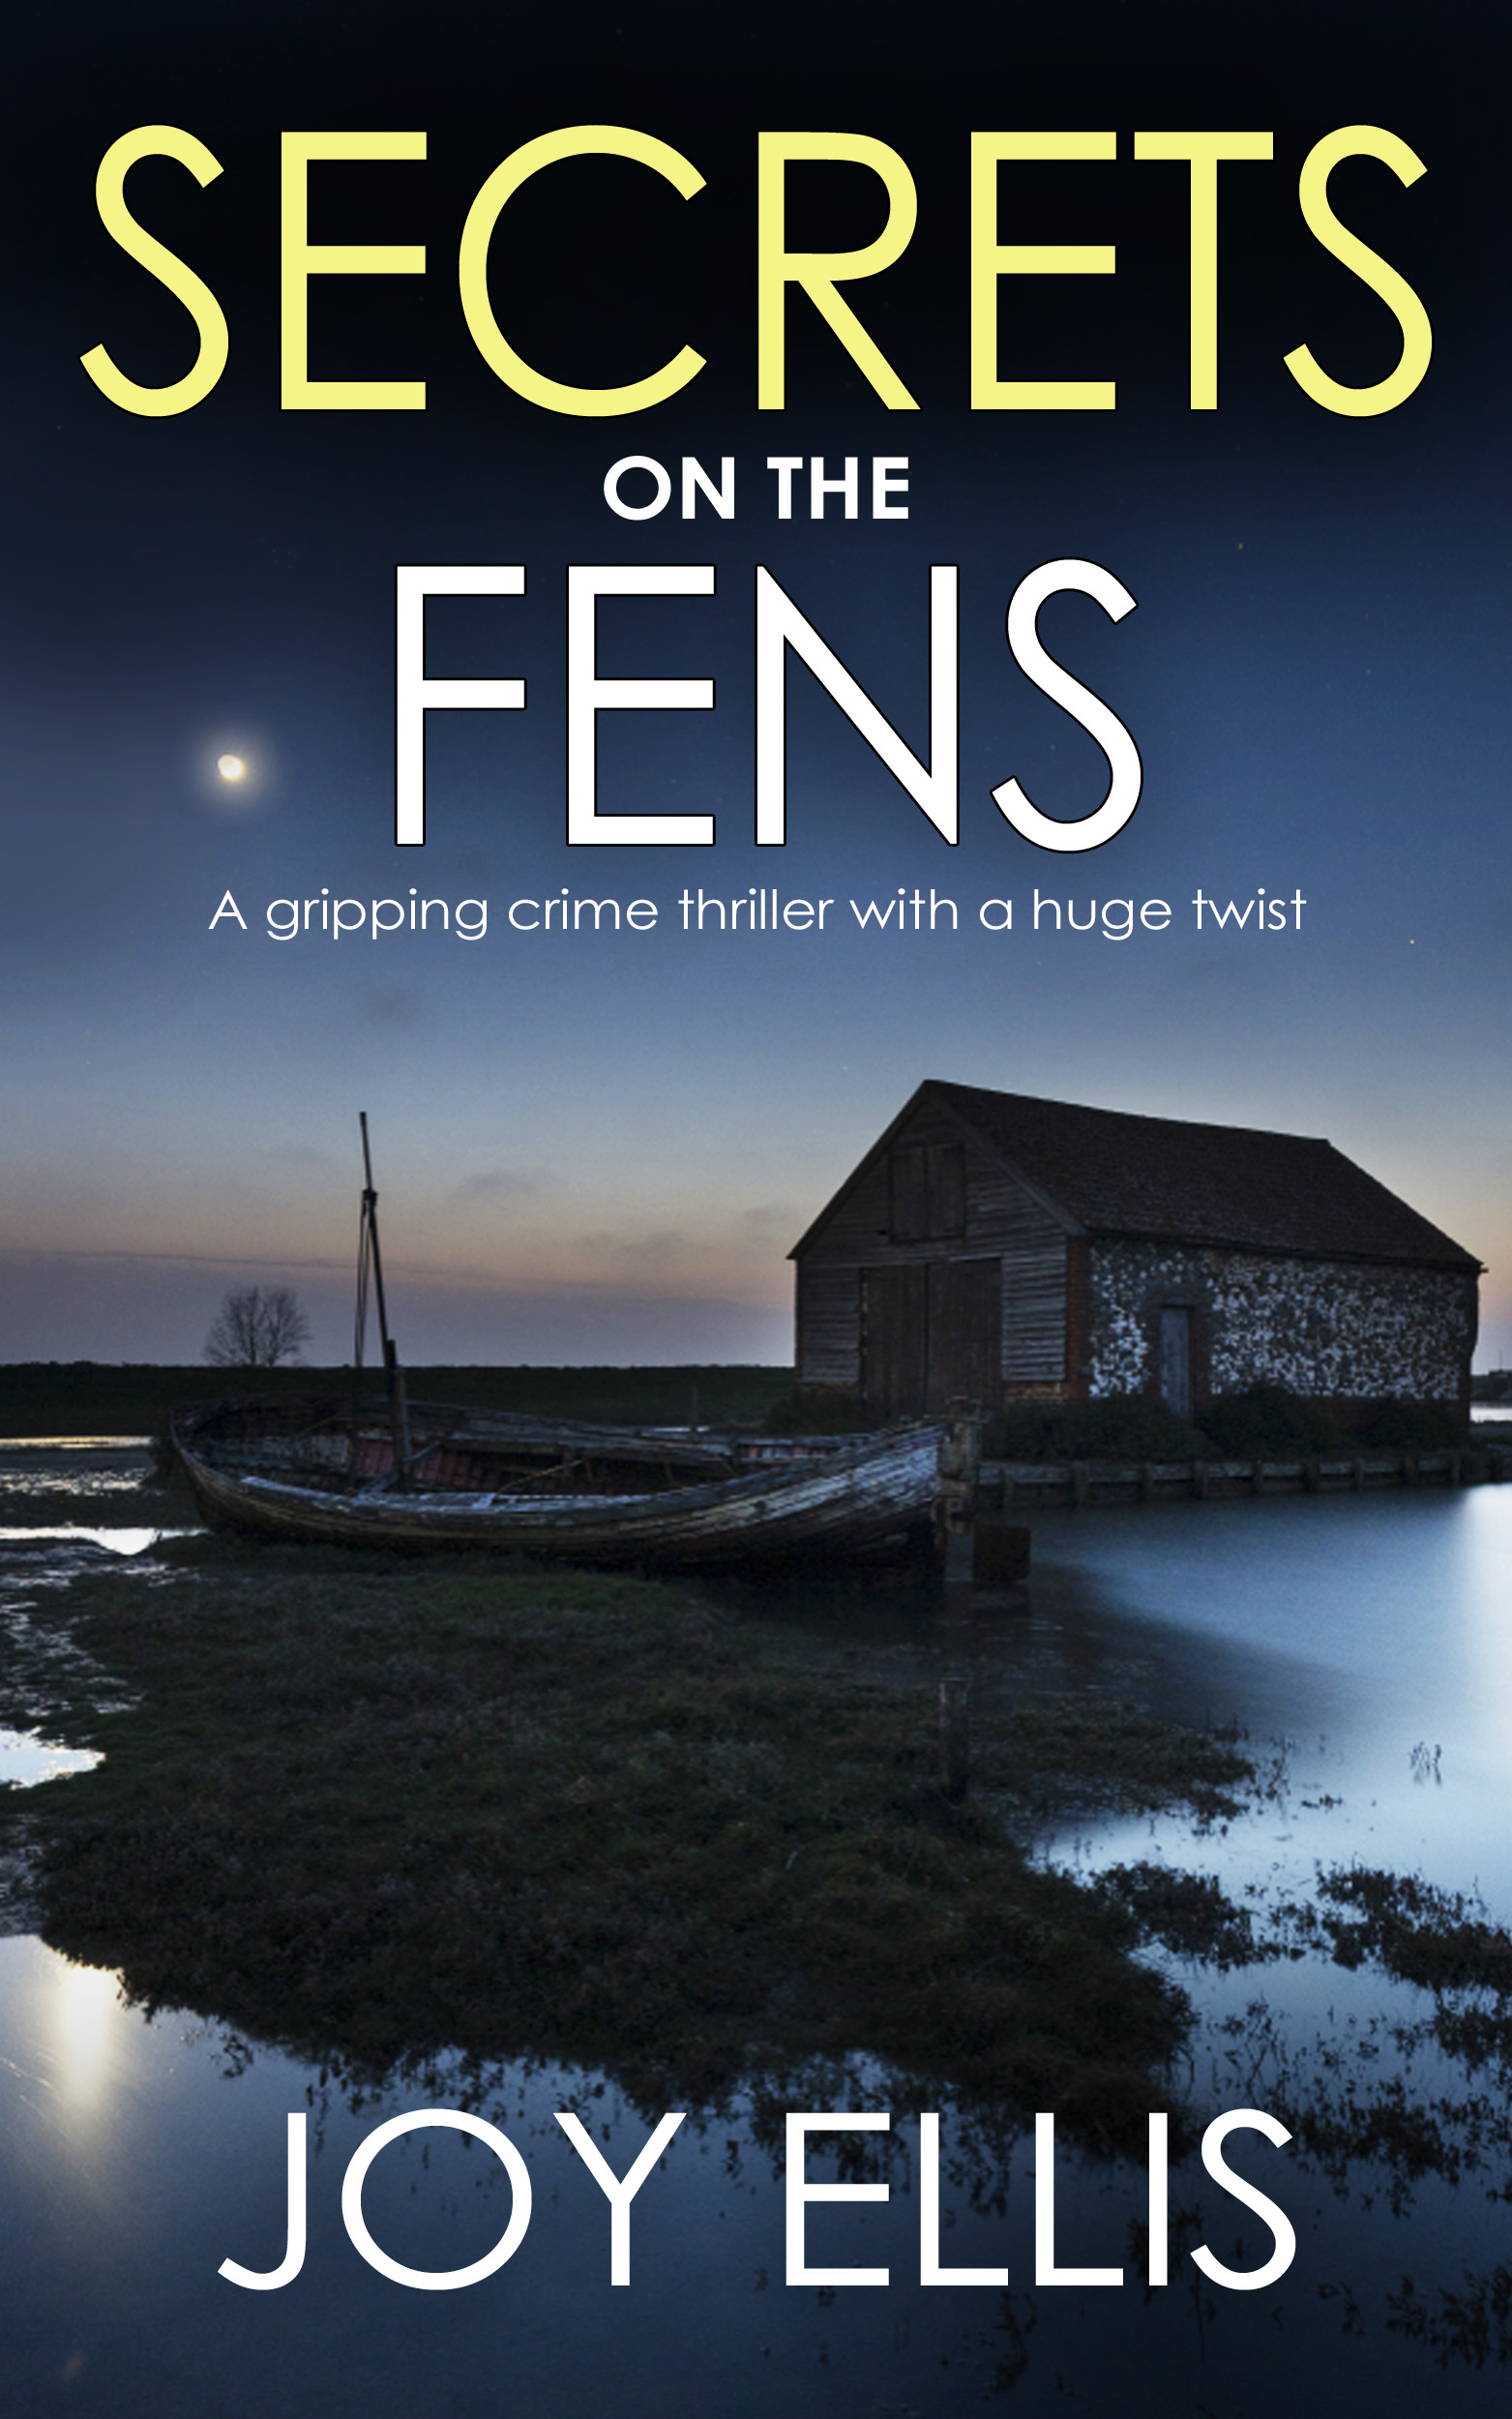 Secrets on the Fens book cover